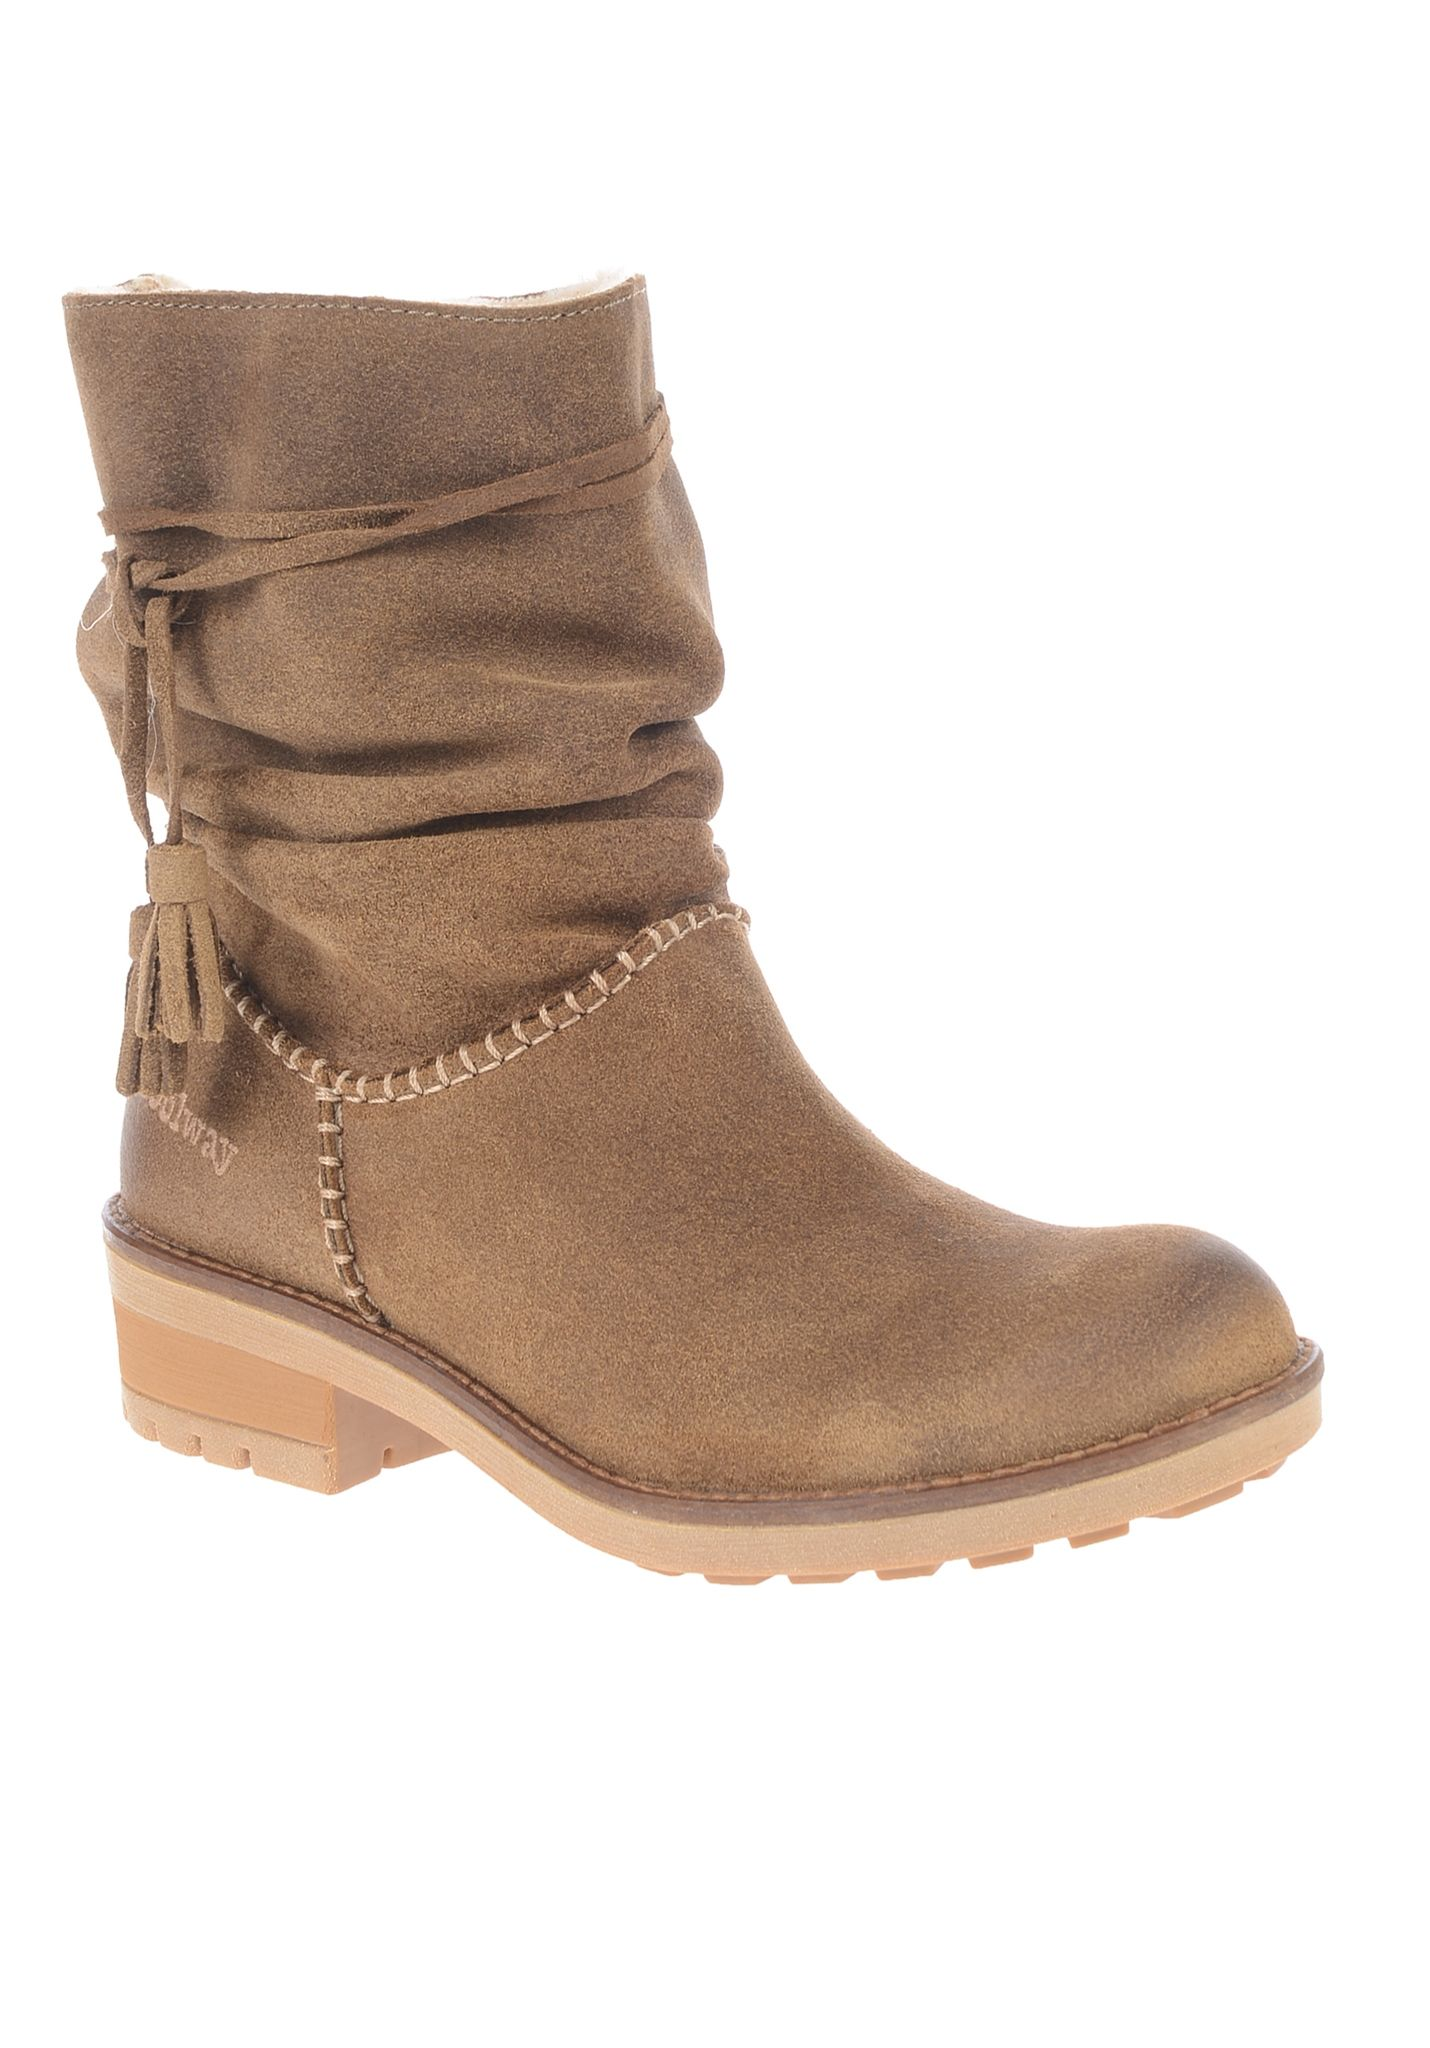 Chaussures Coolway marron femme VNPZI